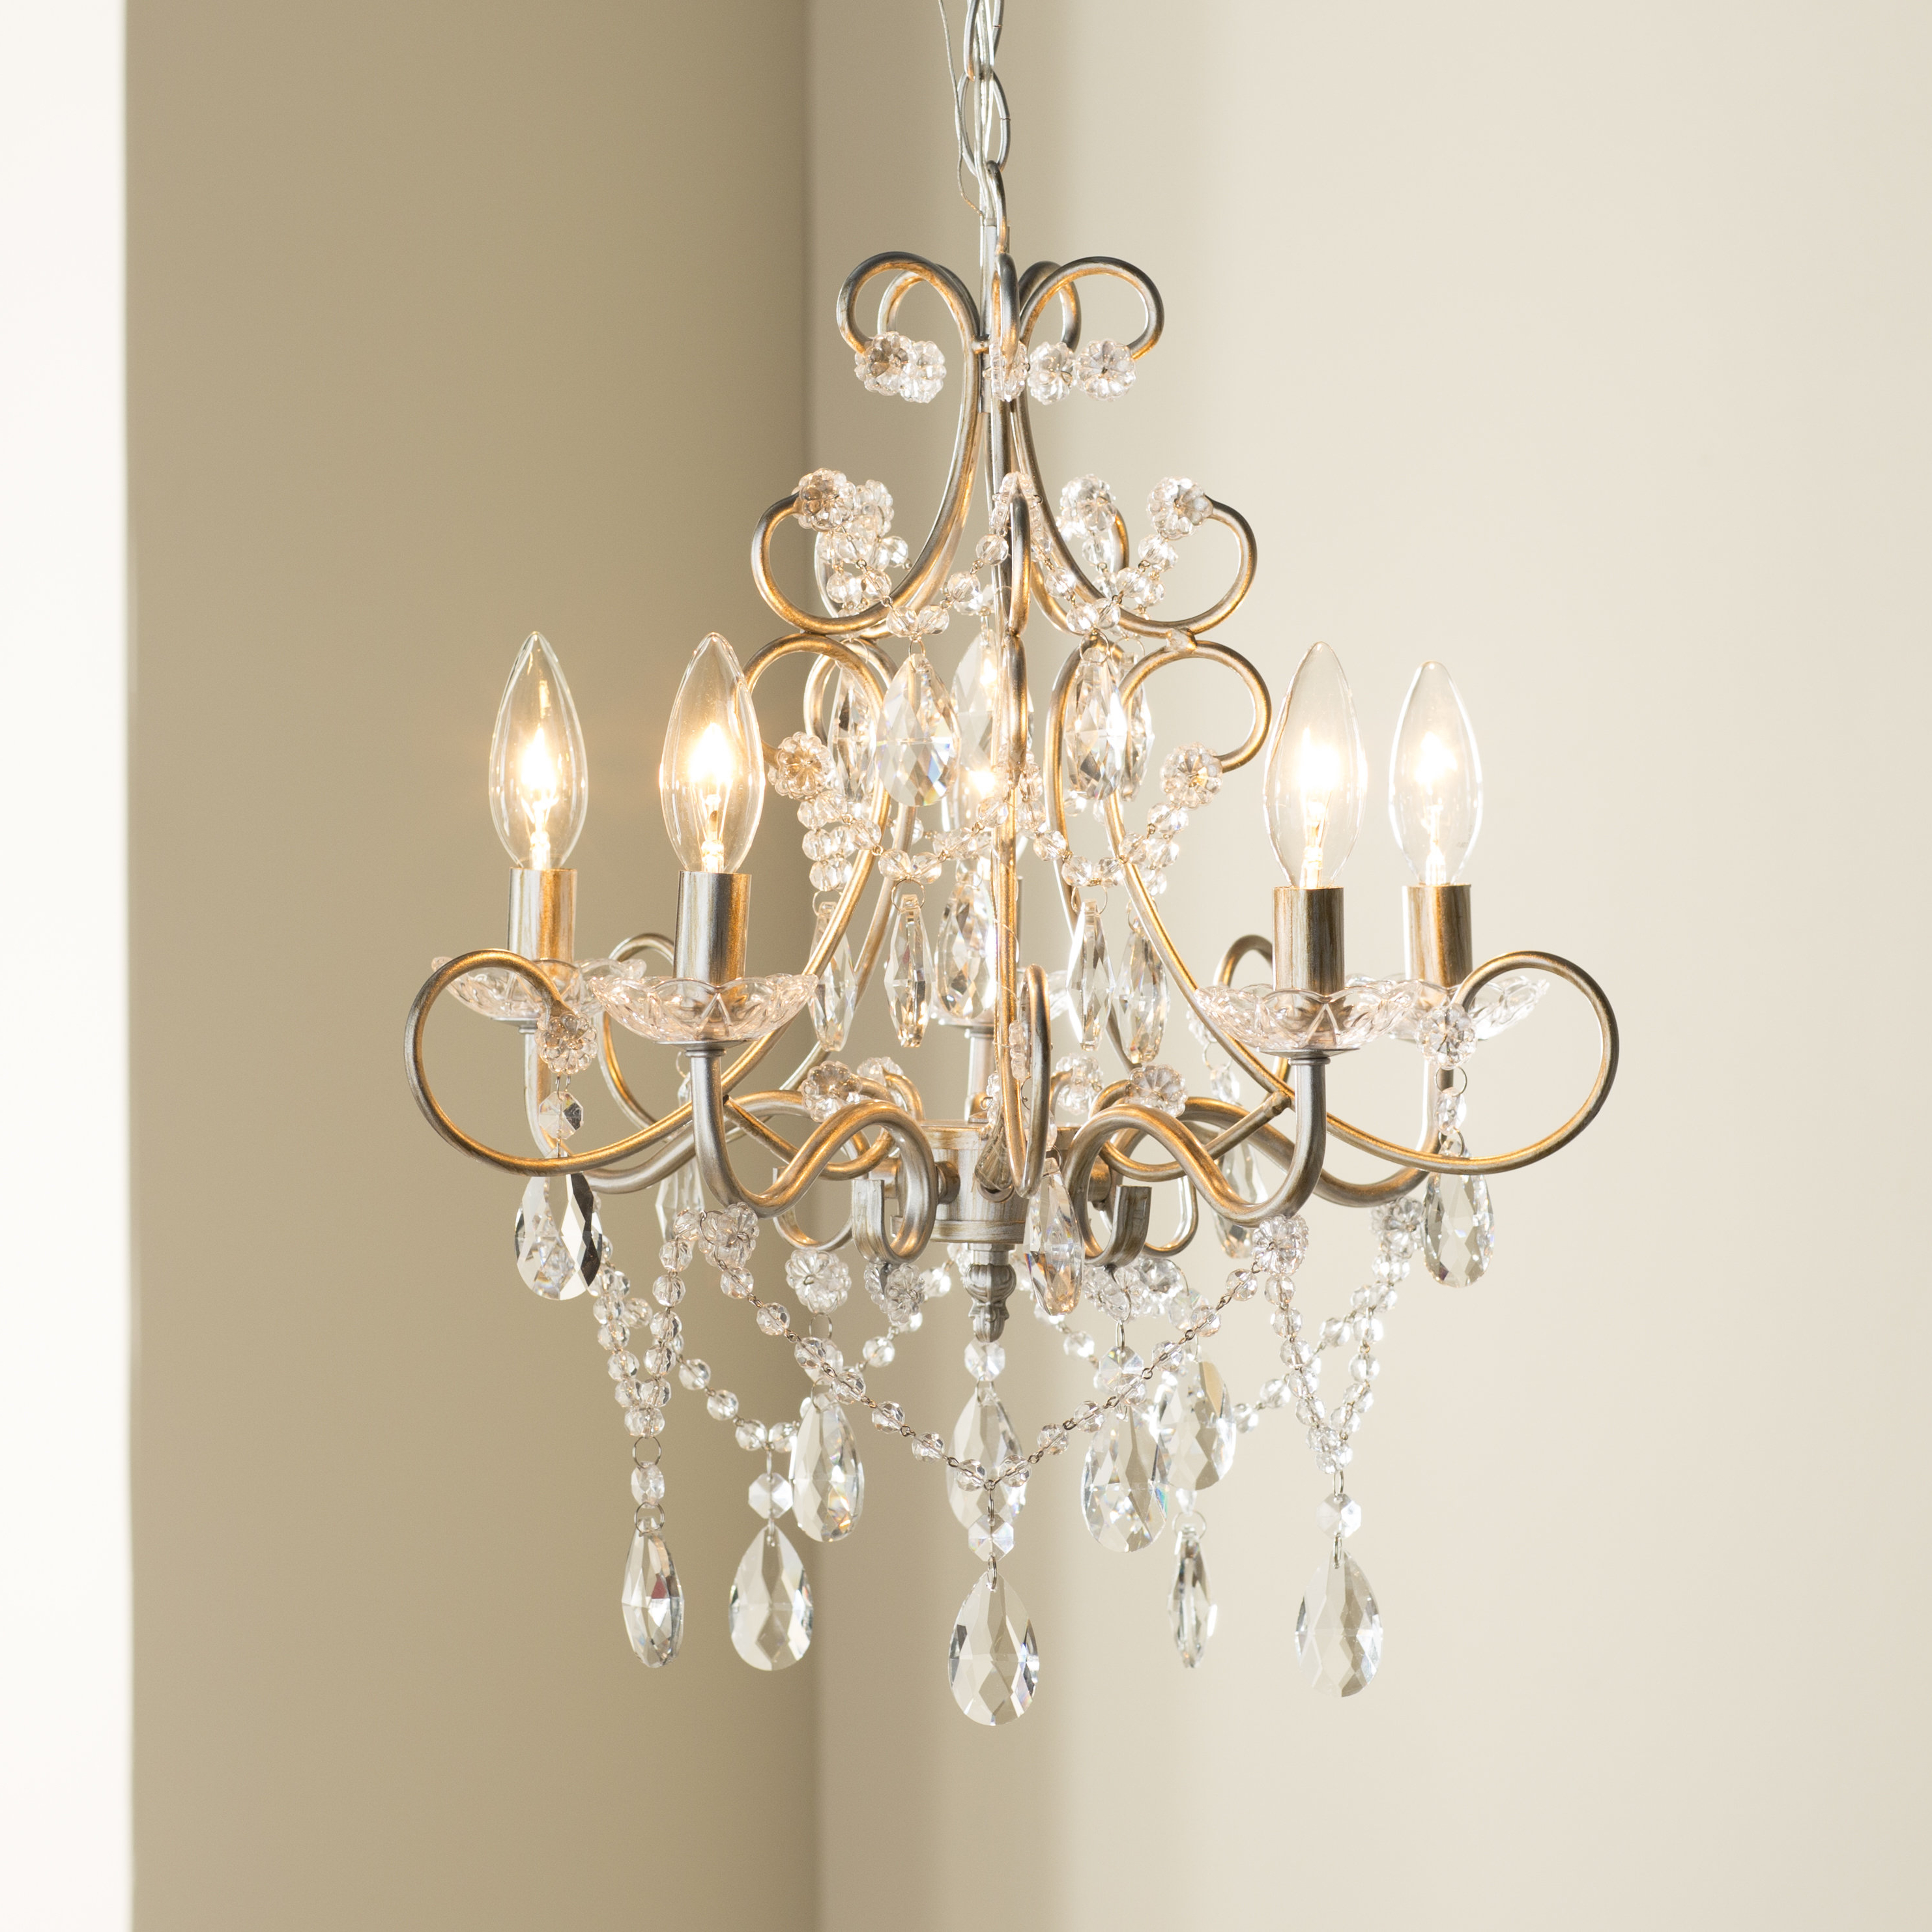 Fashionable Blanchette 5 Light Candle Style Chandeliers Within Blanchette 5 Light Candle Style Chandelier (View 11 of 20)